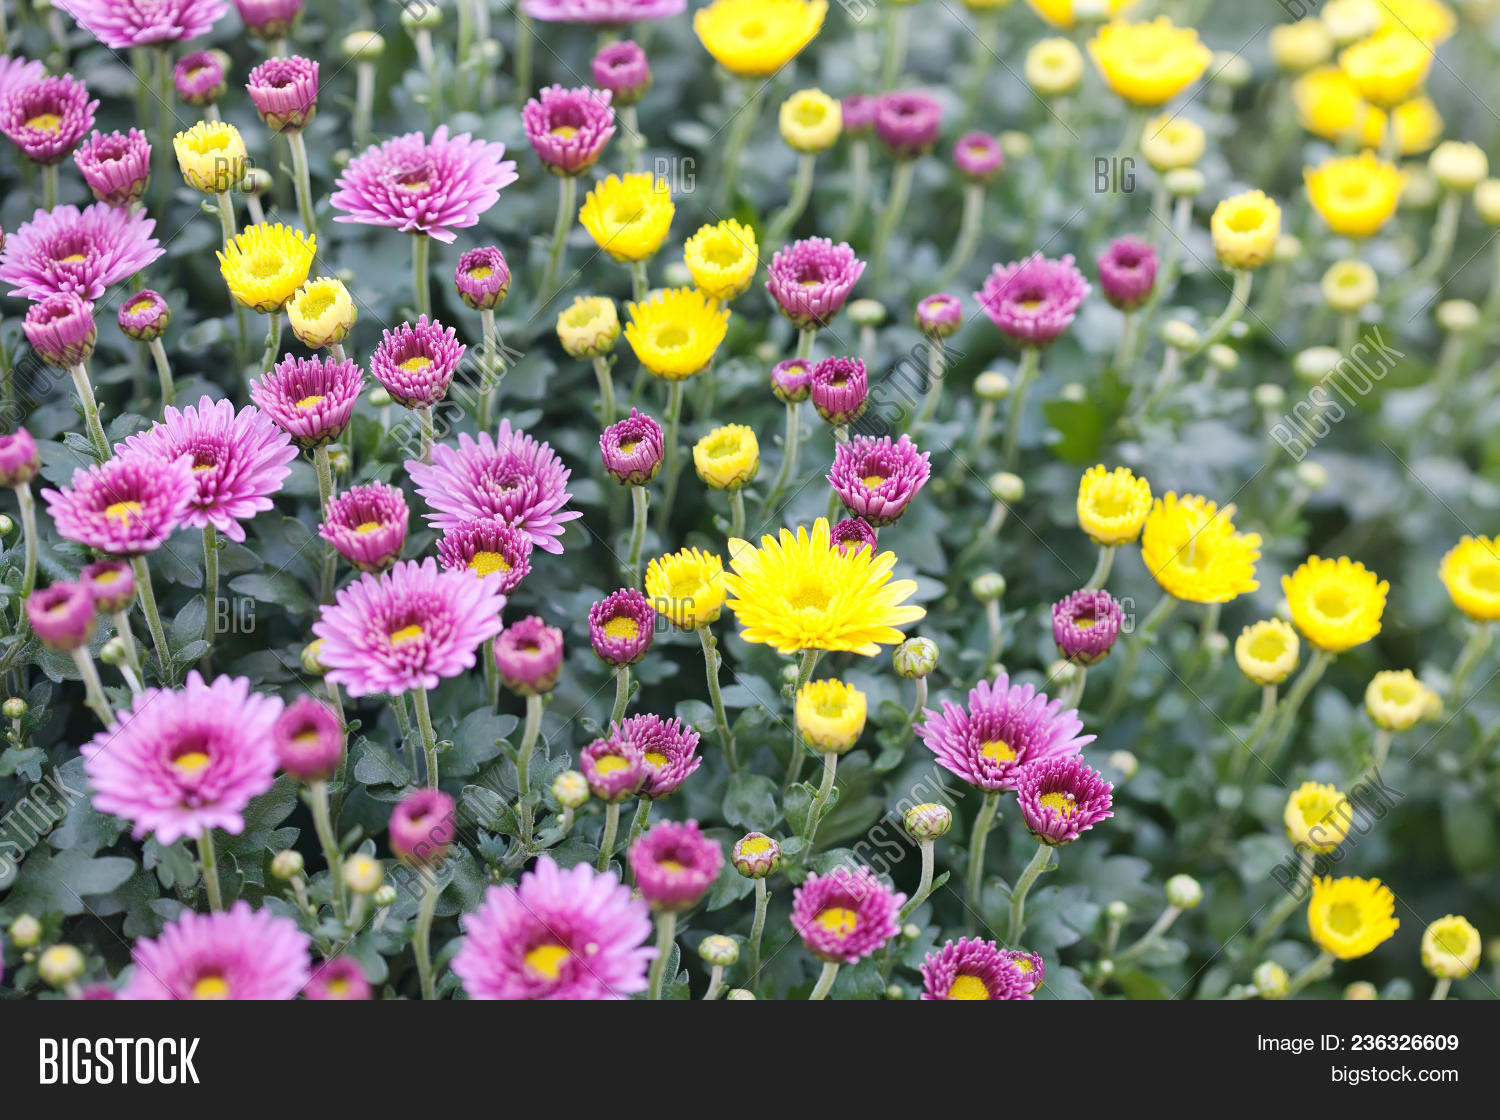 Violet Pink Yellow Image Photo Free Trial Bigstock